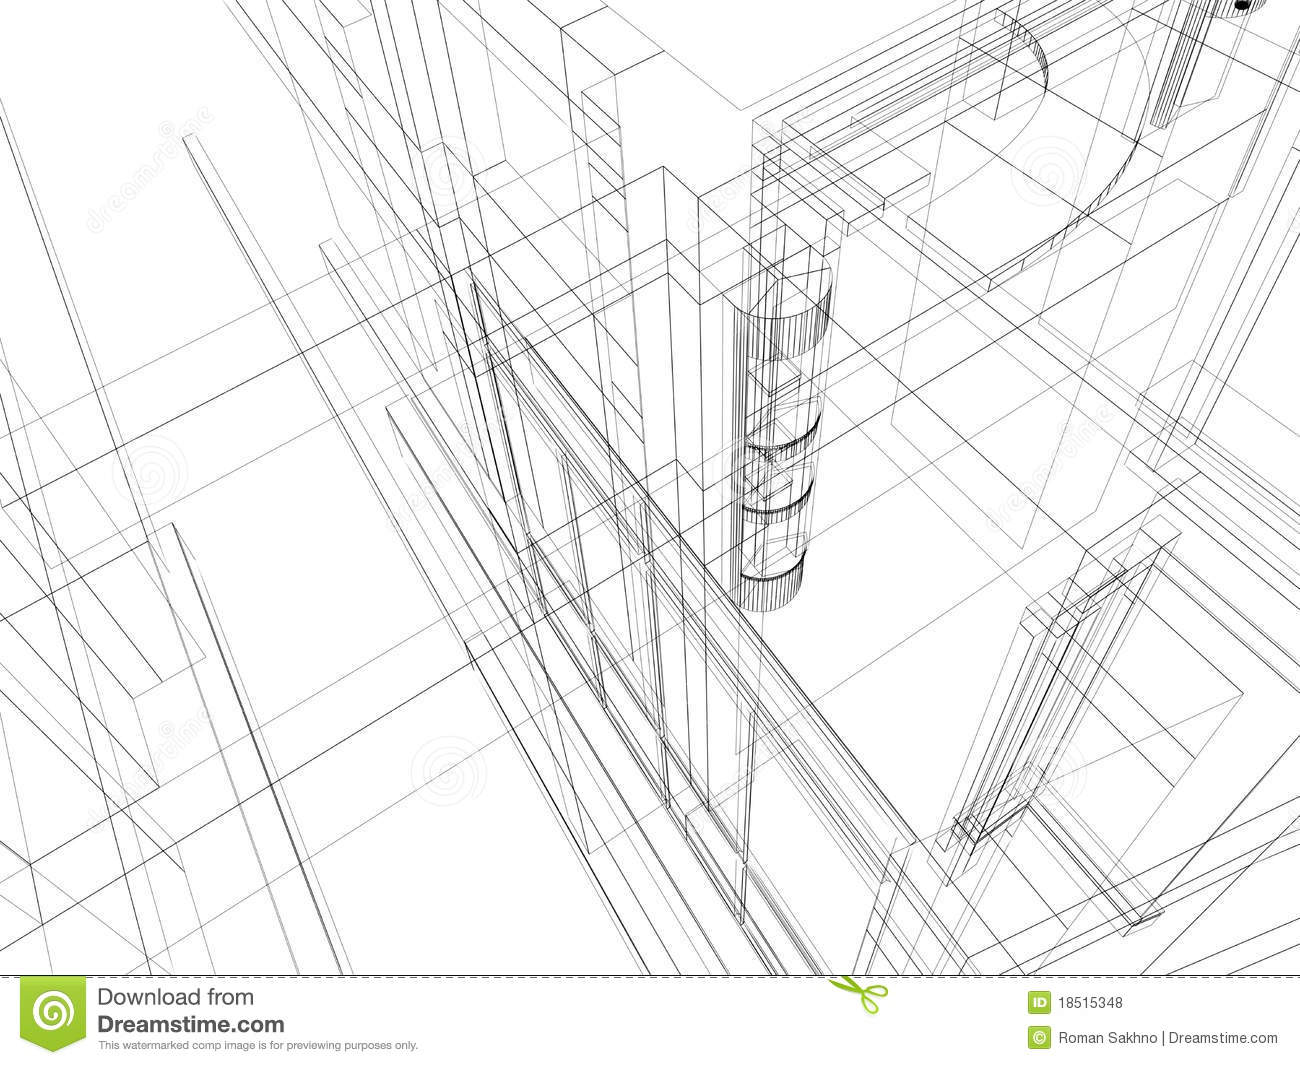 Abstract Scetch Architectural Construction Royalty Free Stock Photos Image 18515348